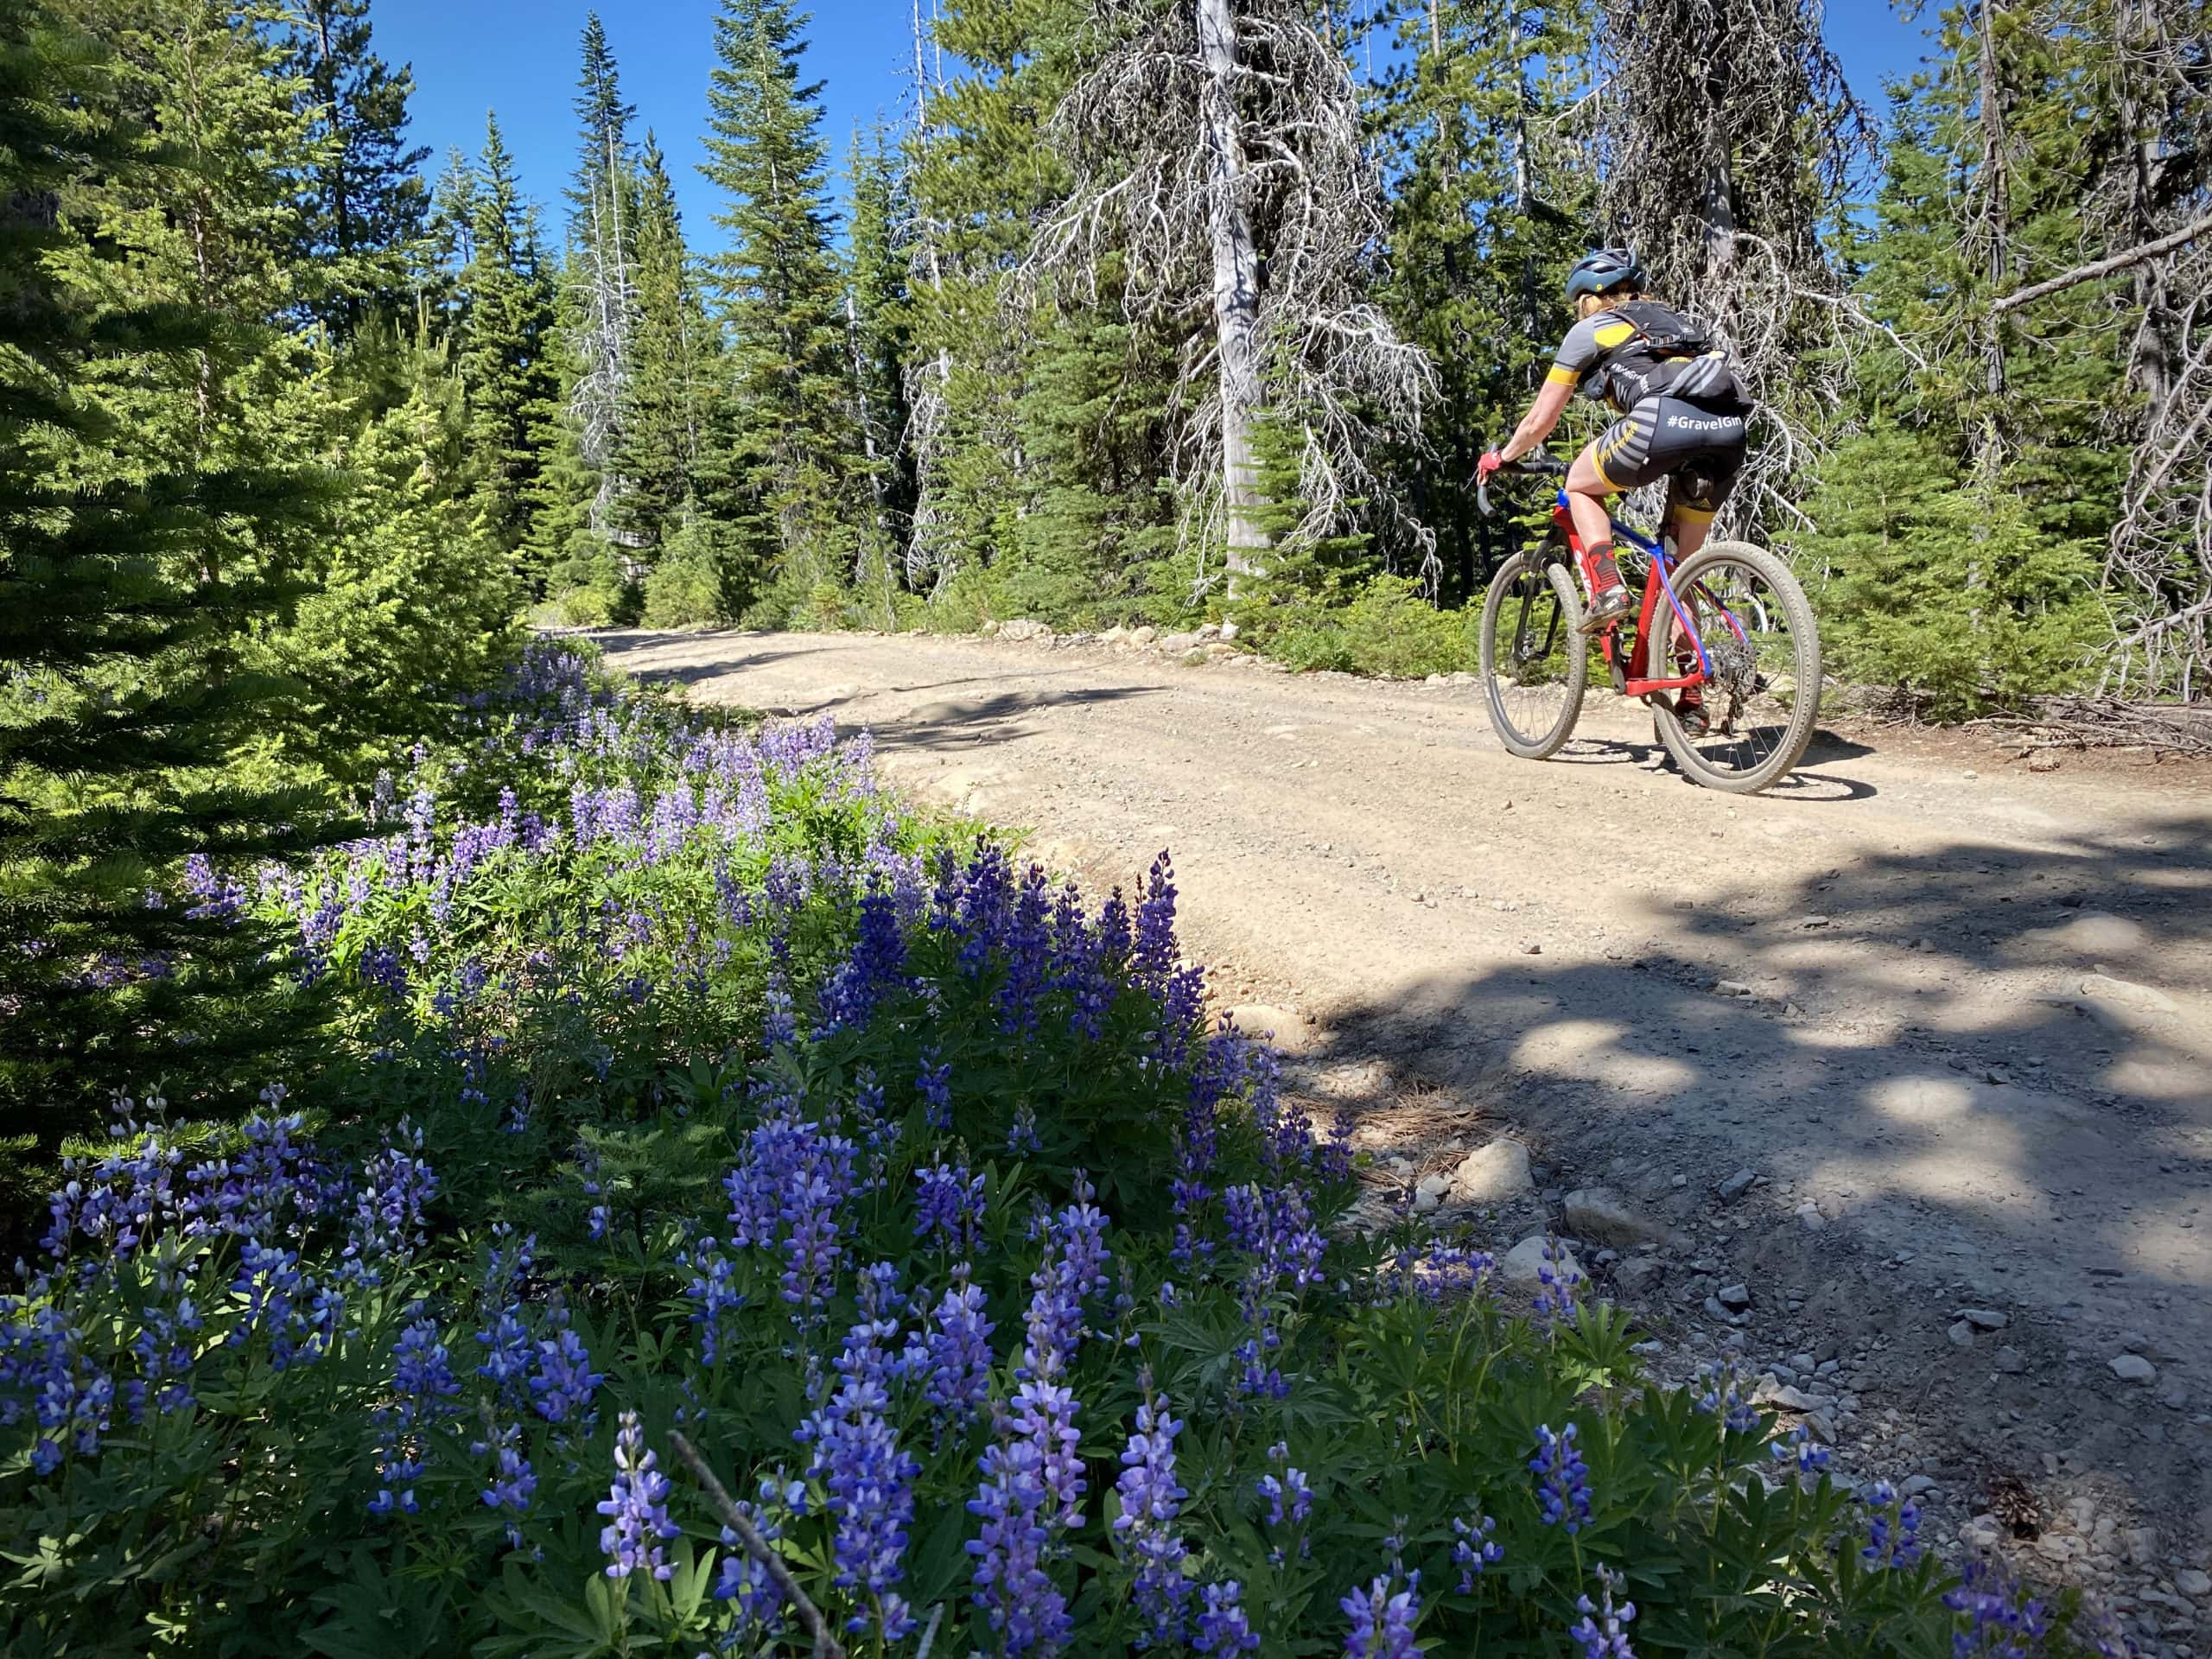 Bike rider on the gravel portion of NF 4880 near Bonney Meadows in the the Mt Hood National Forest.